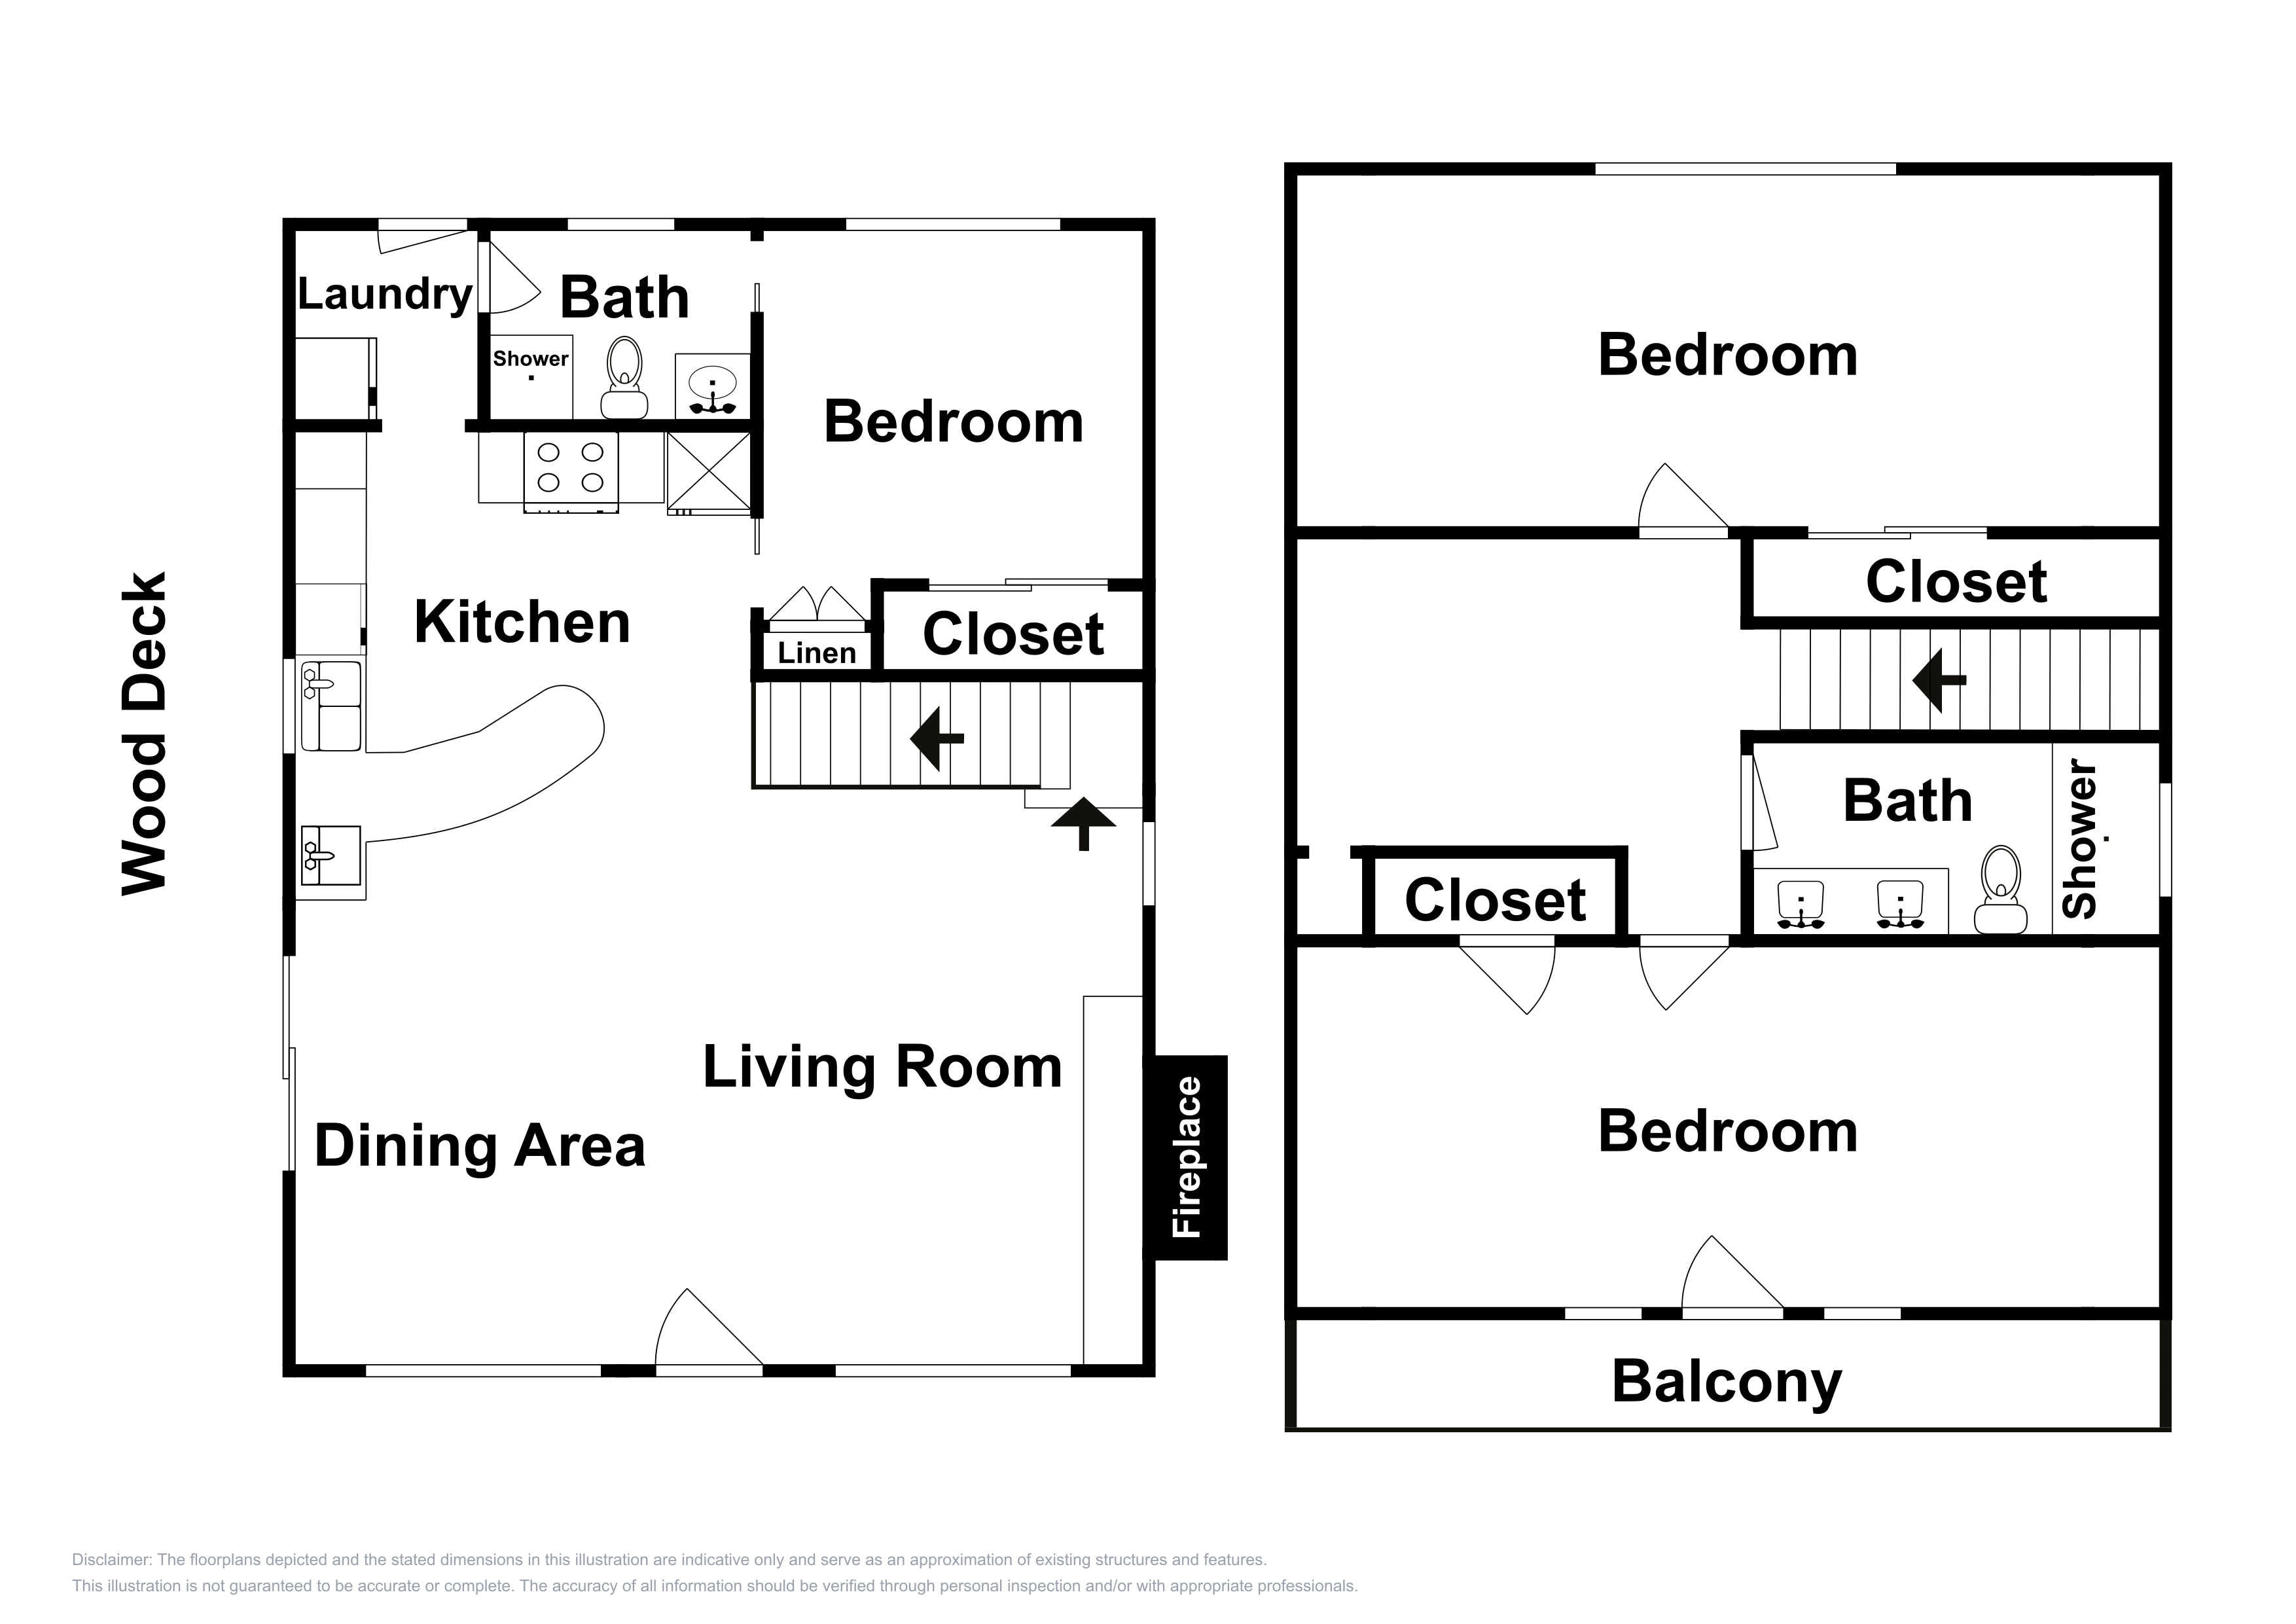 This floor plan is an approximation and is not an exact representation.